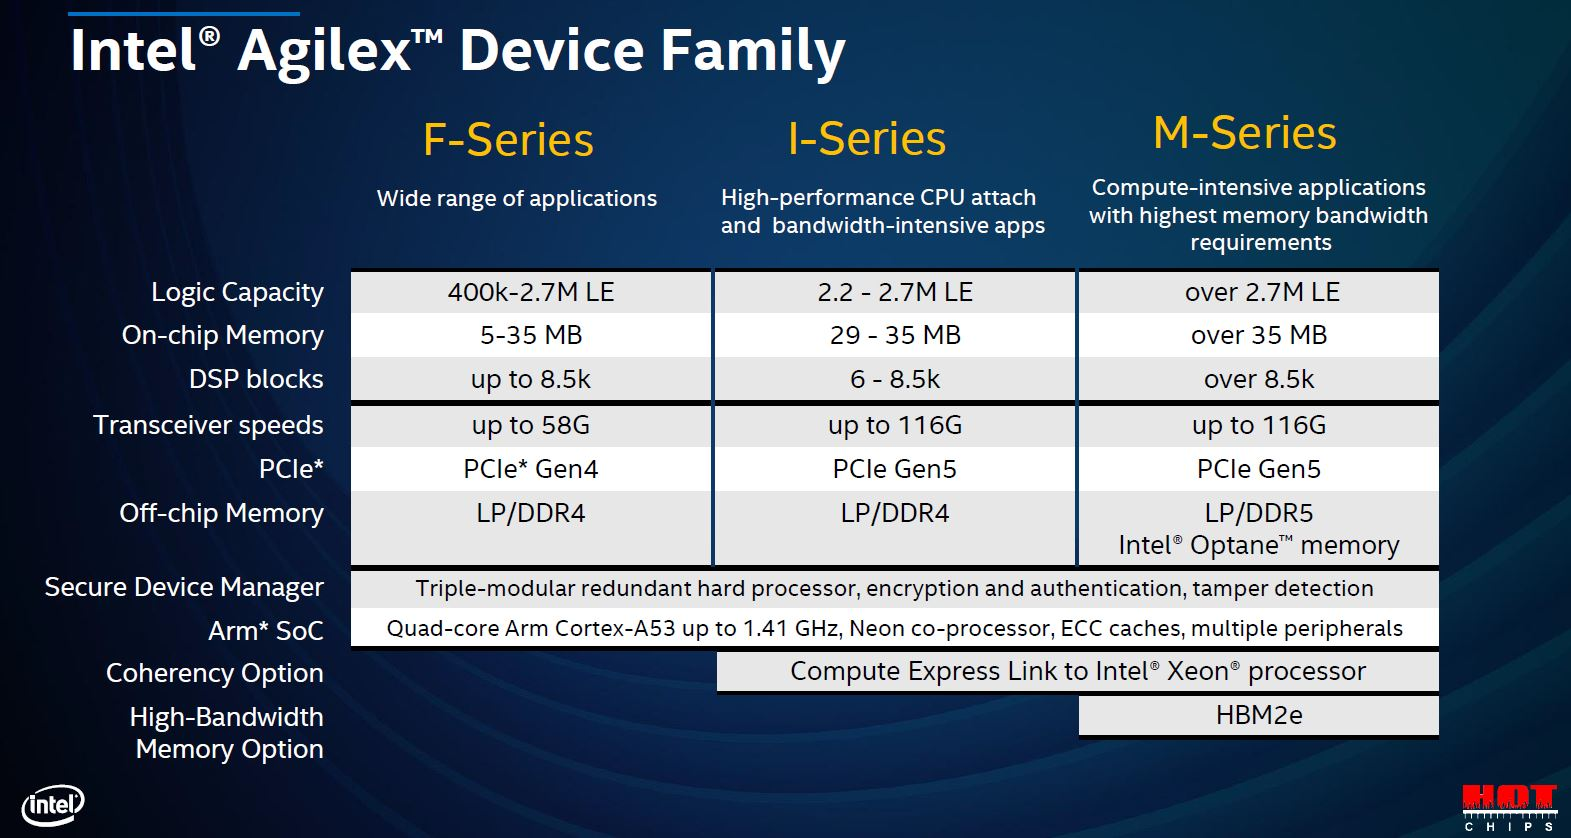 Hot Chips 32 Intel Agilex Device Family